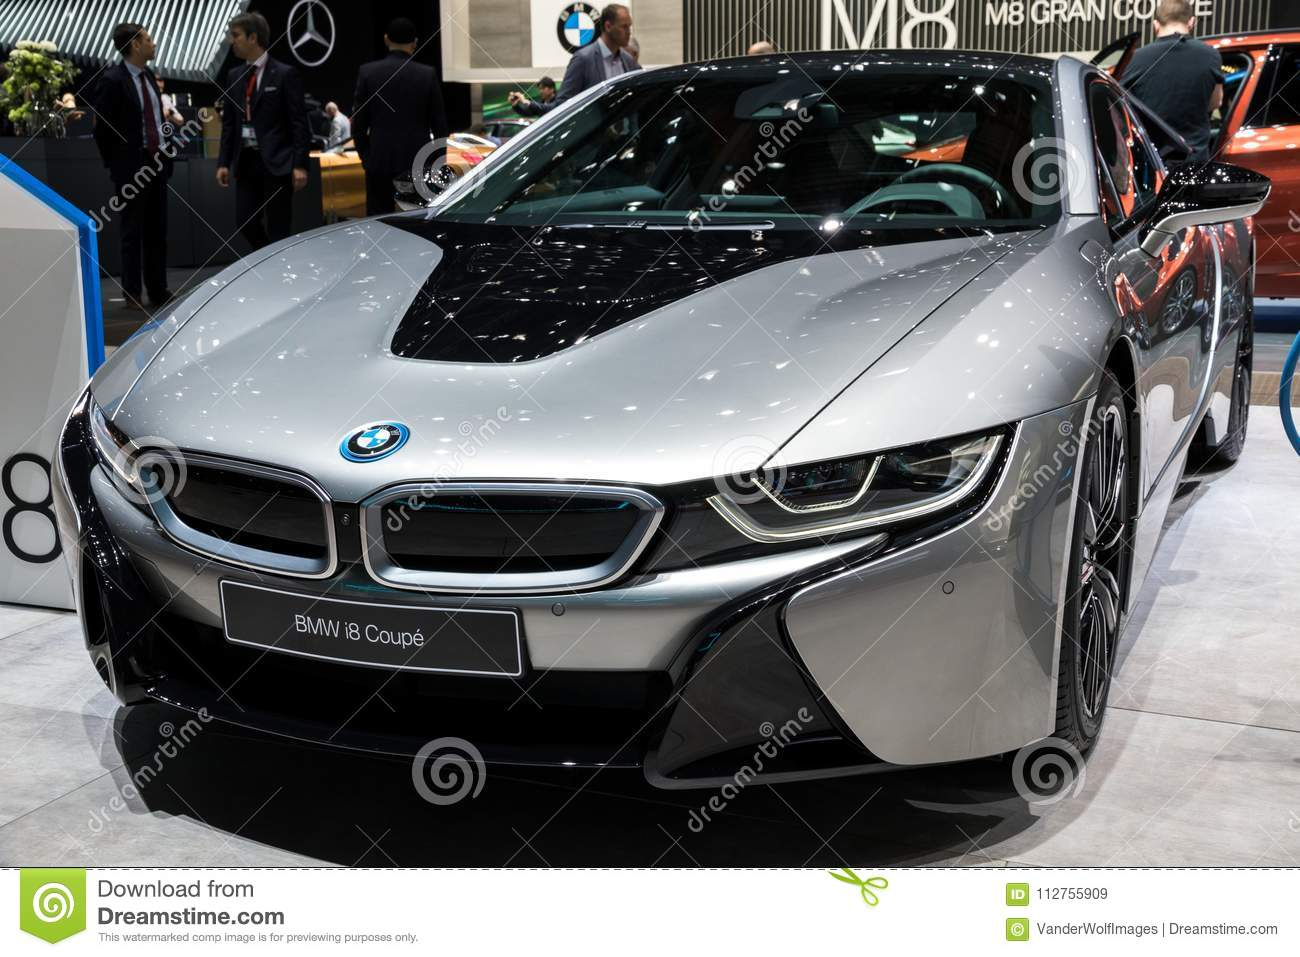 Bmw I8 Coupe Sports Car Editorial Stock Image Image Of Performance